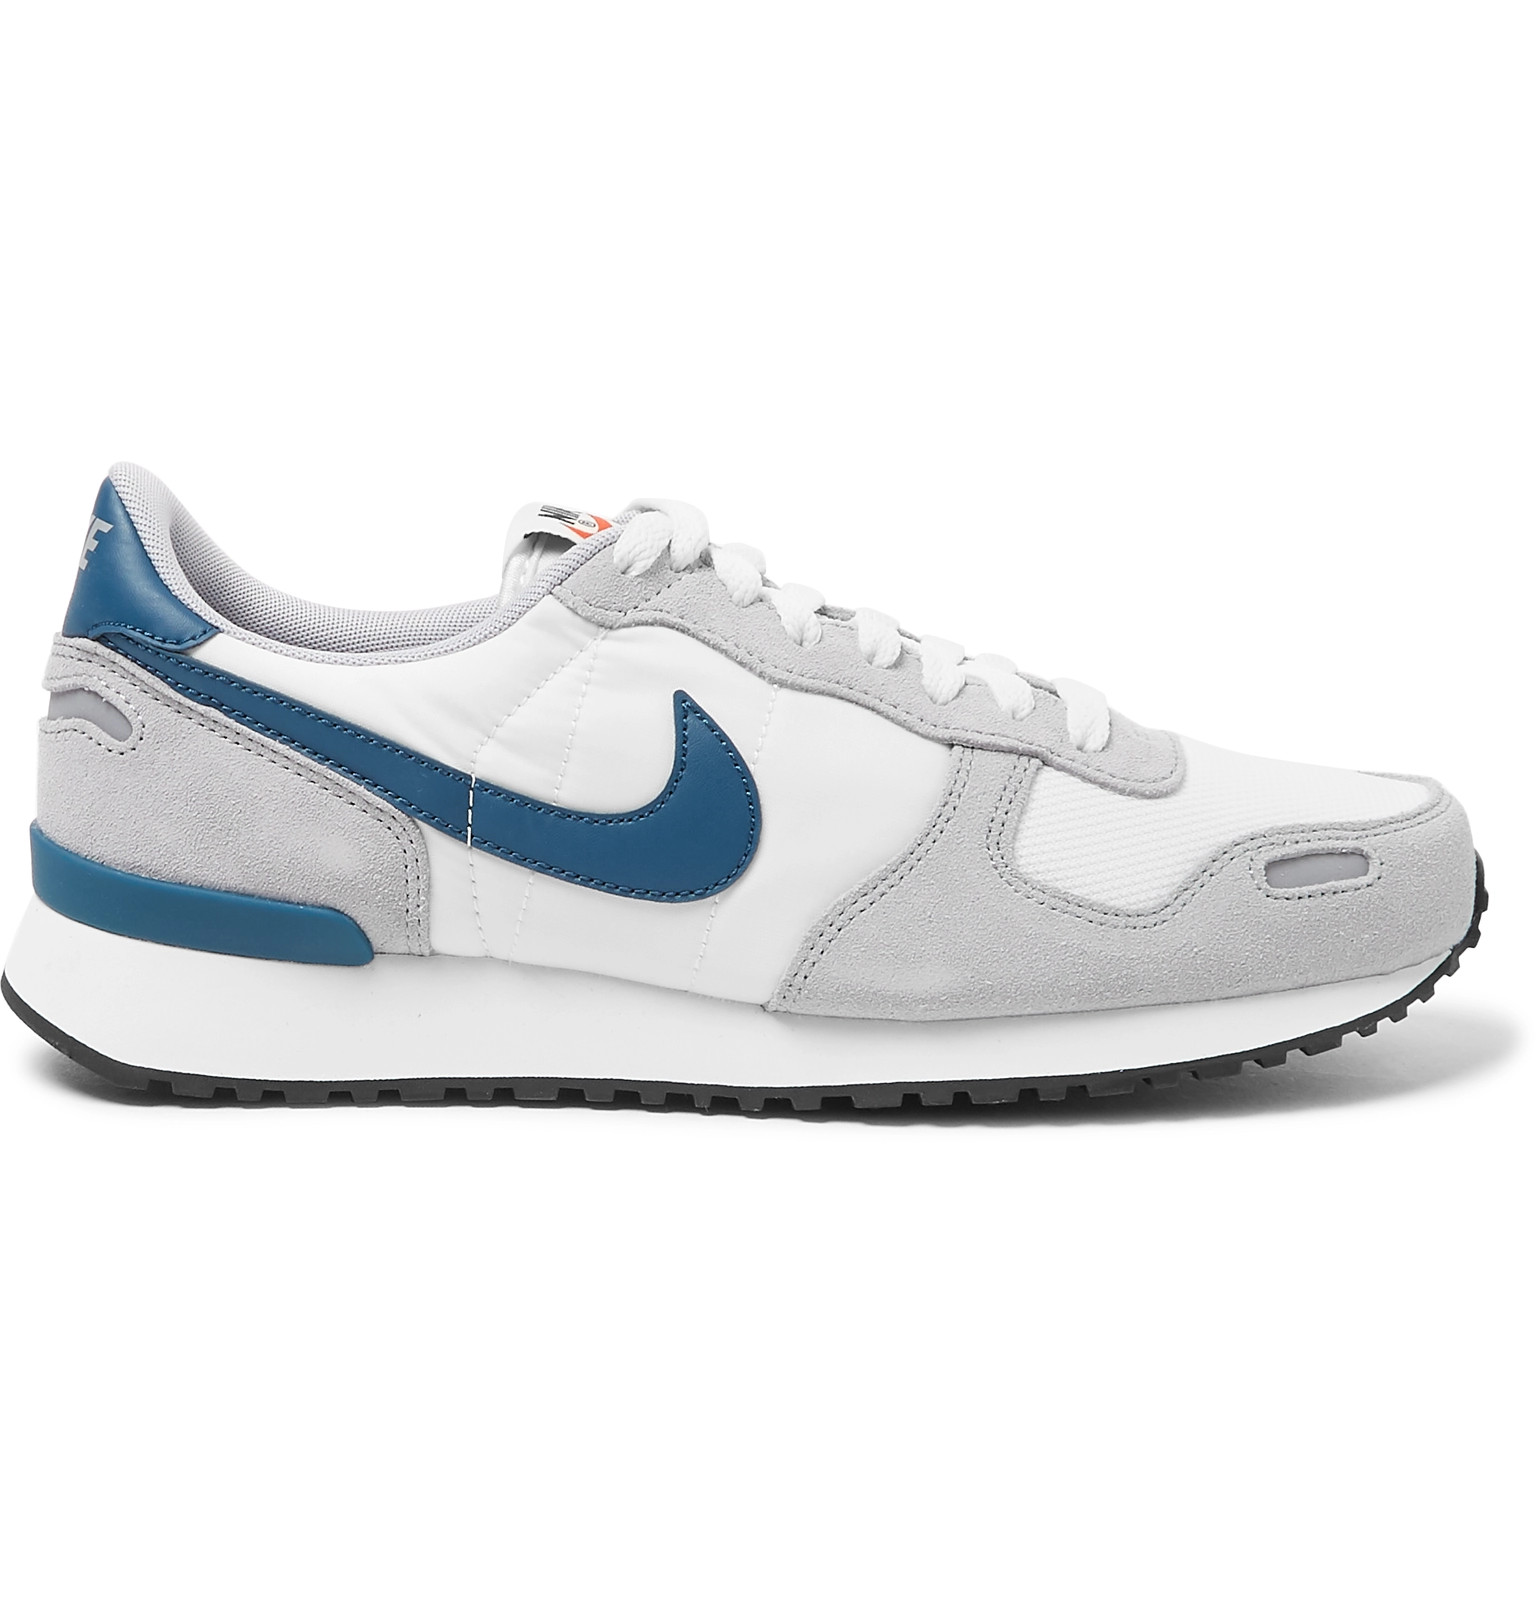 san francisco 2fea1 3d0a3 Nike - Air Vortex Leather-Trimmed Suede, Nylon And Mesh Sneakers